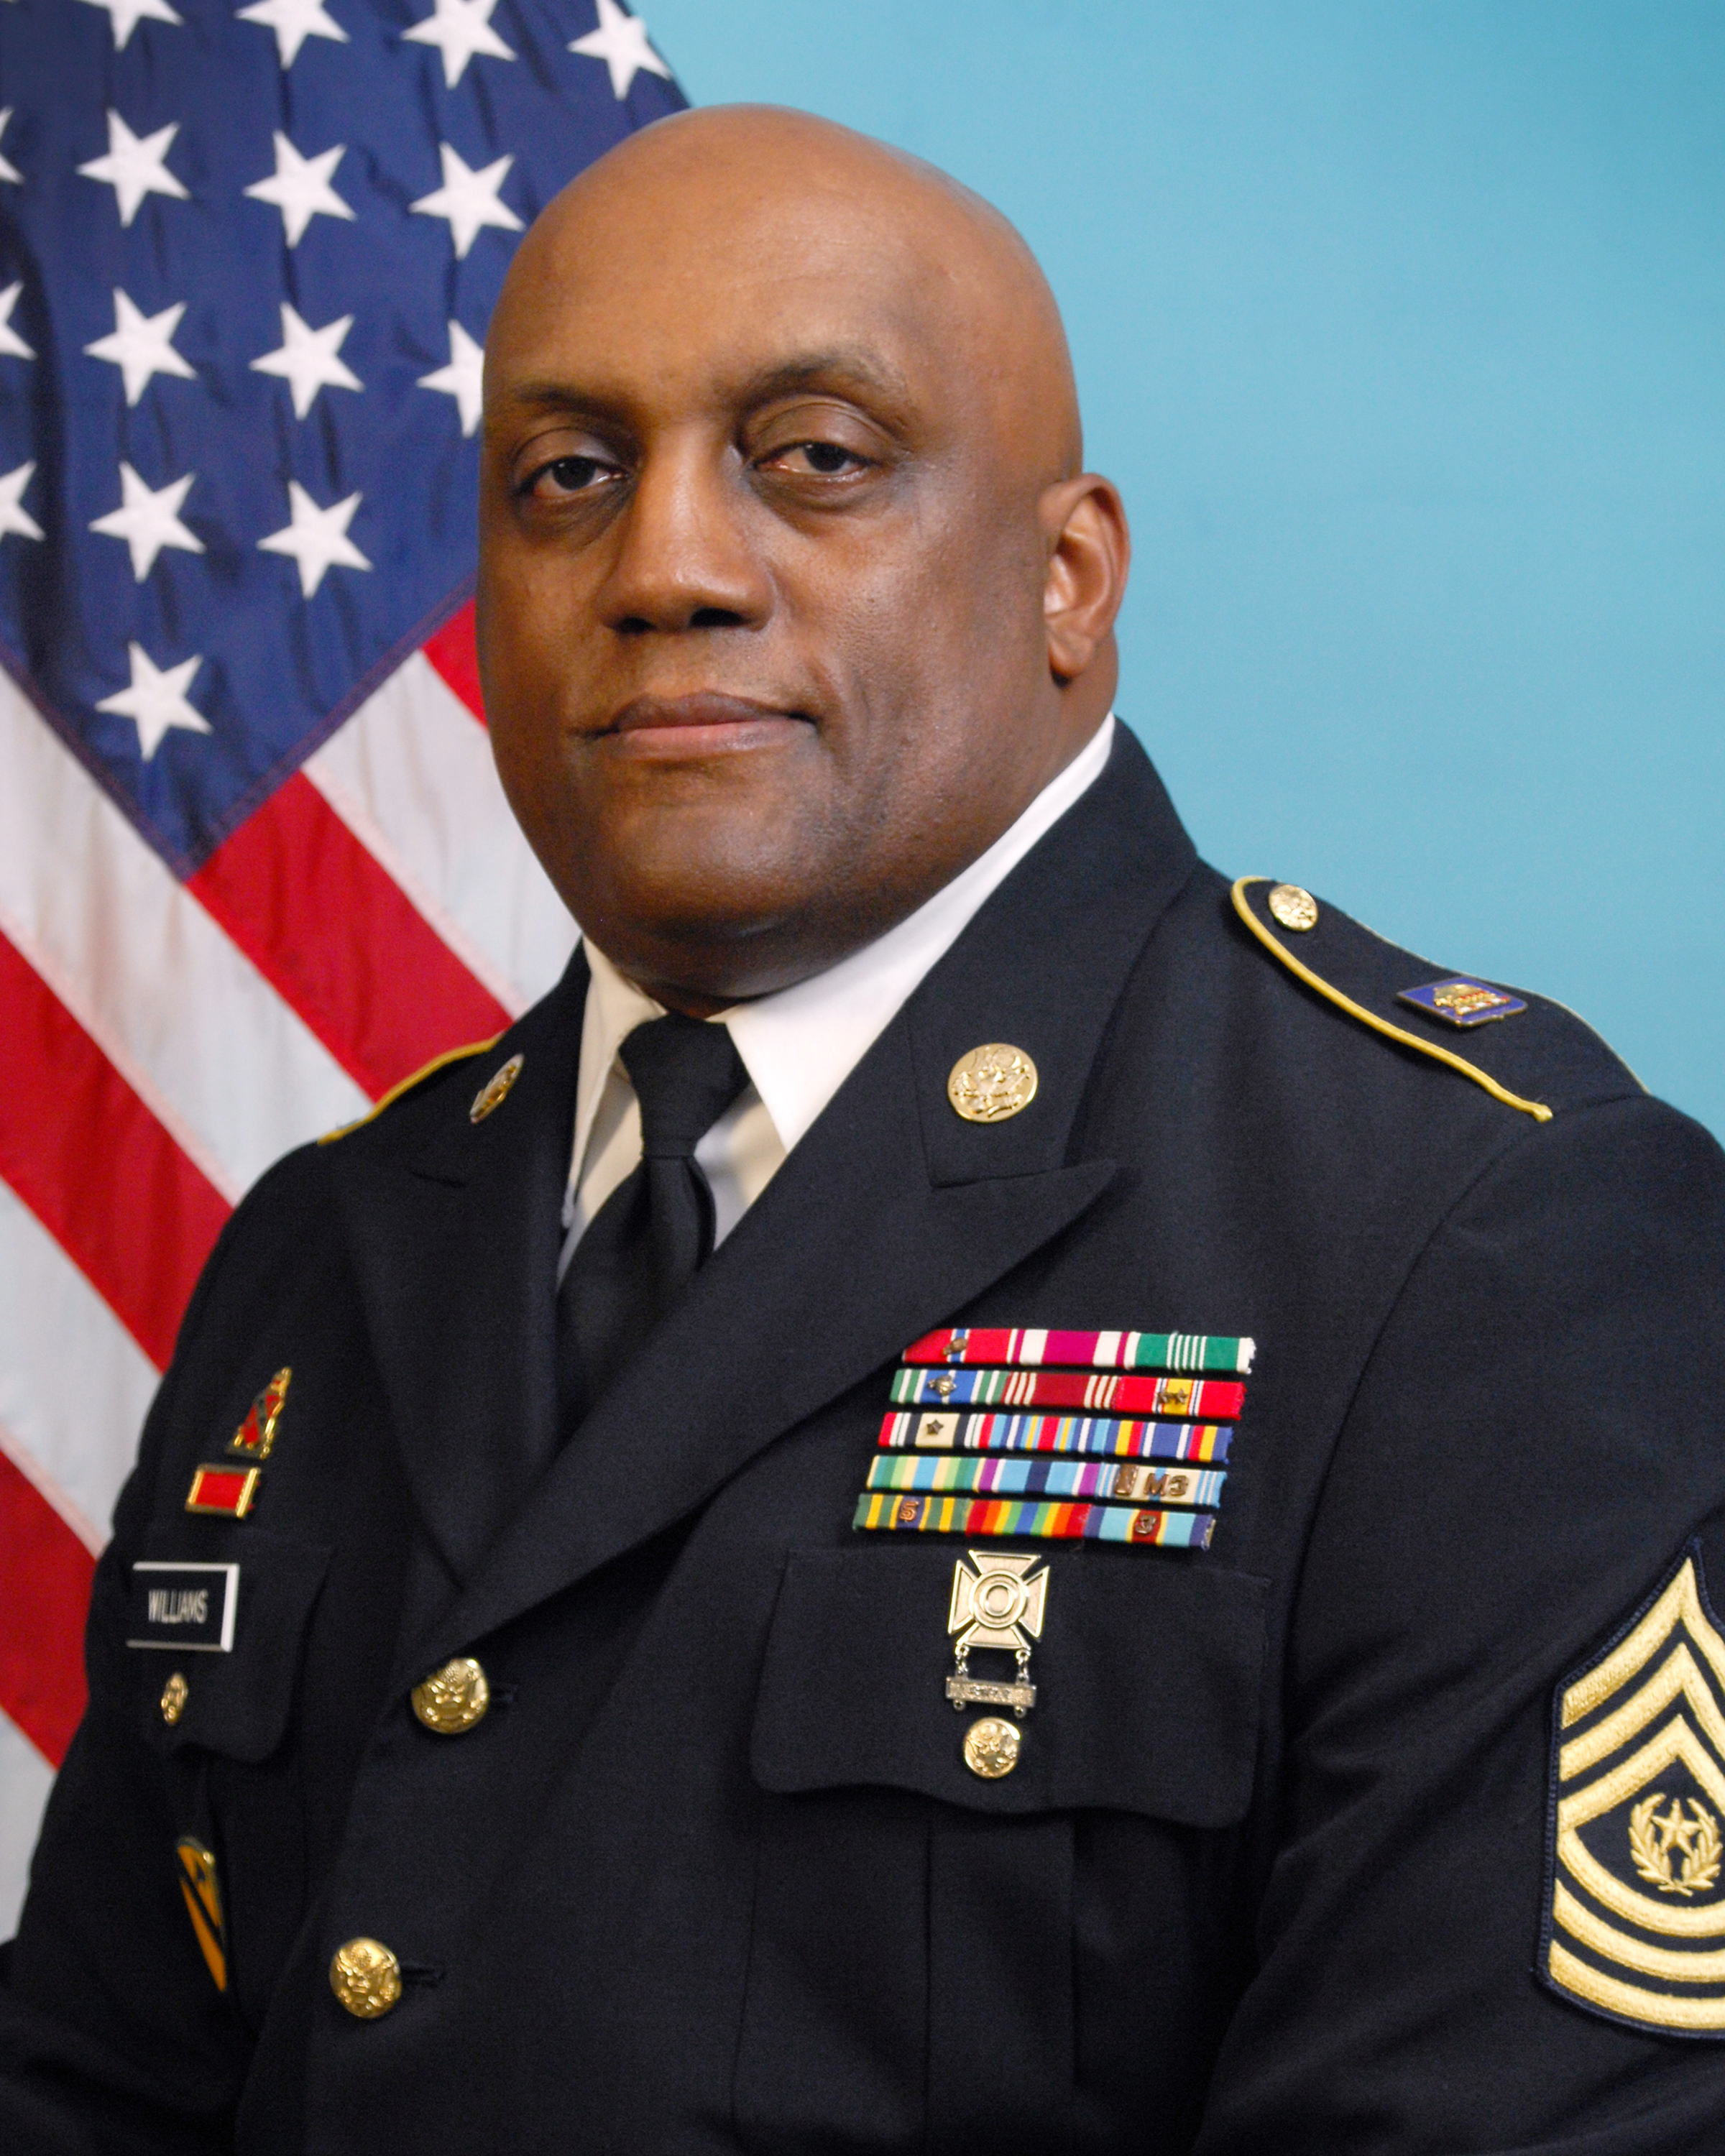 State Command Sergeant Major Nj Army National Guard